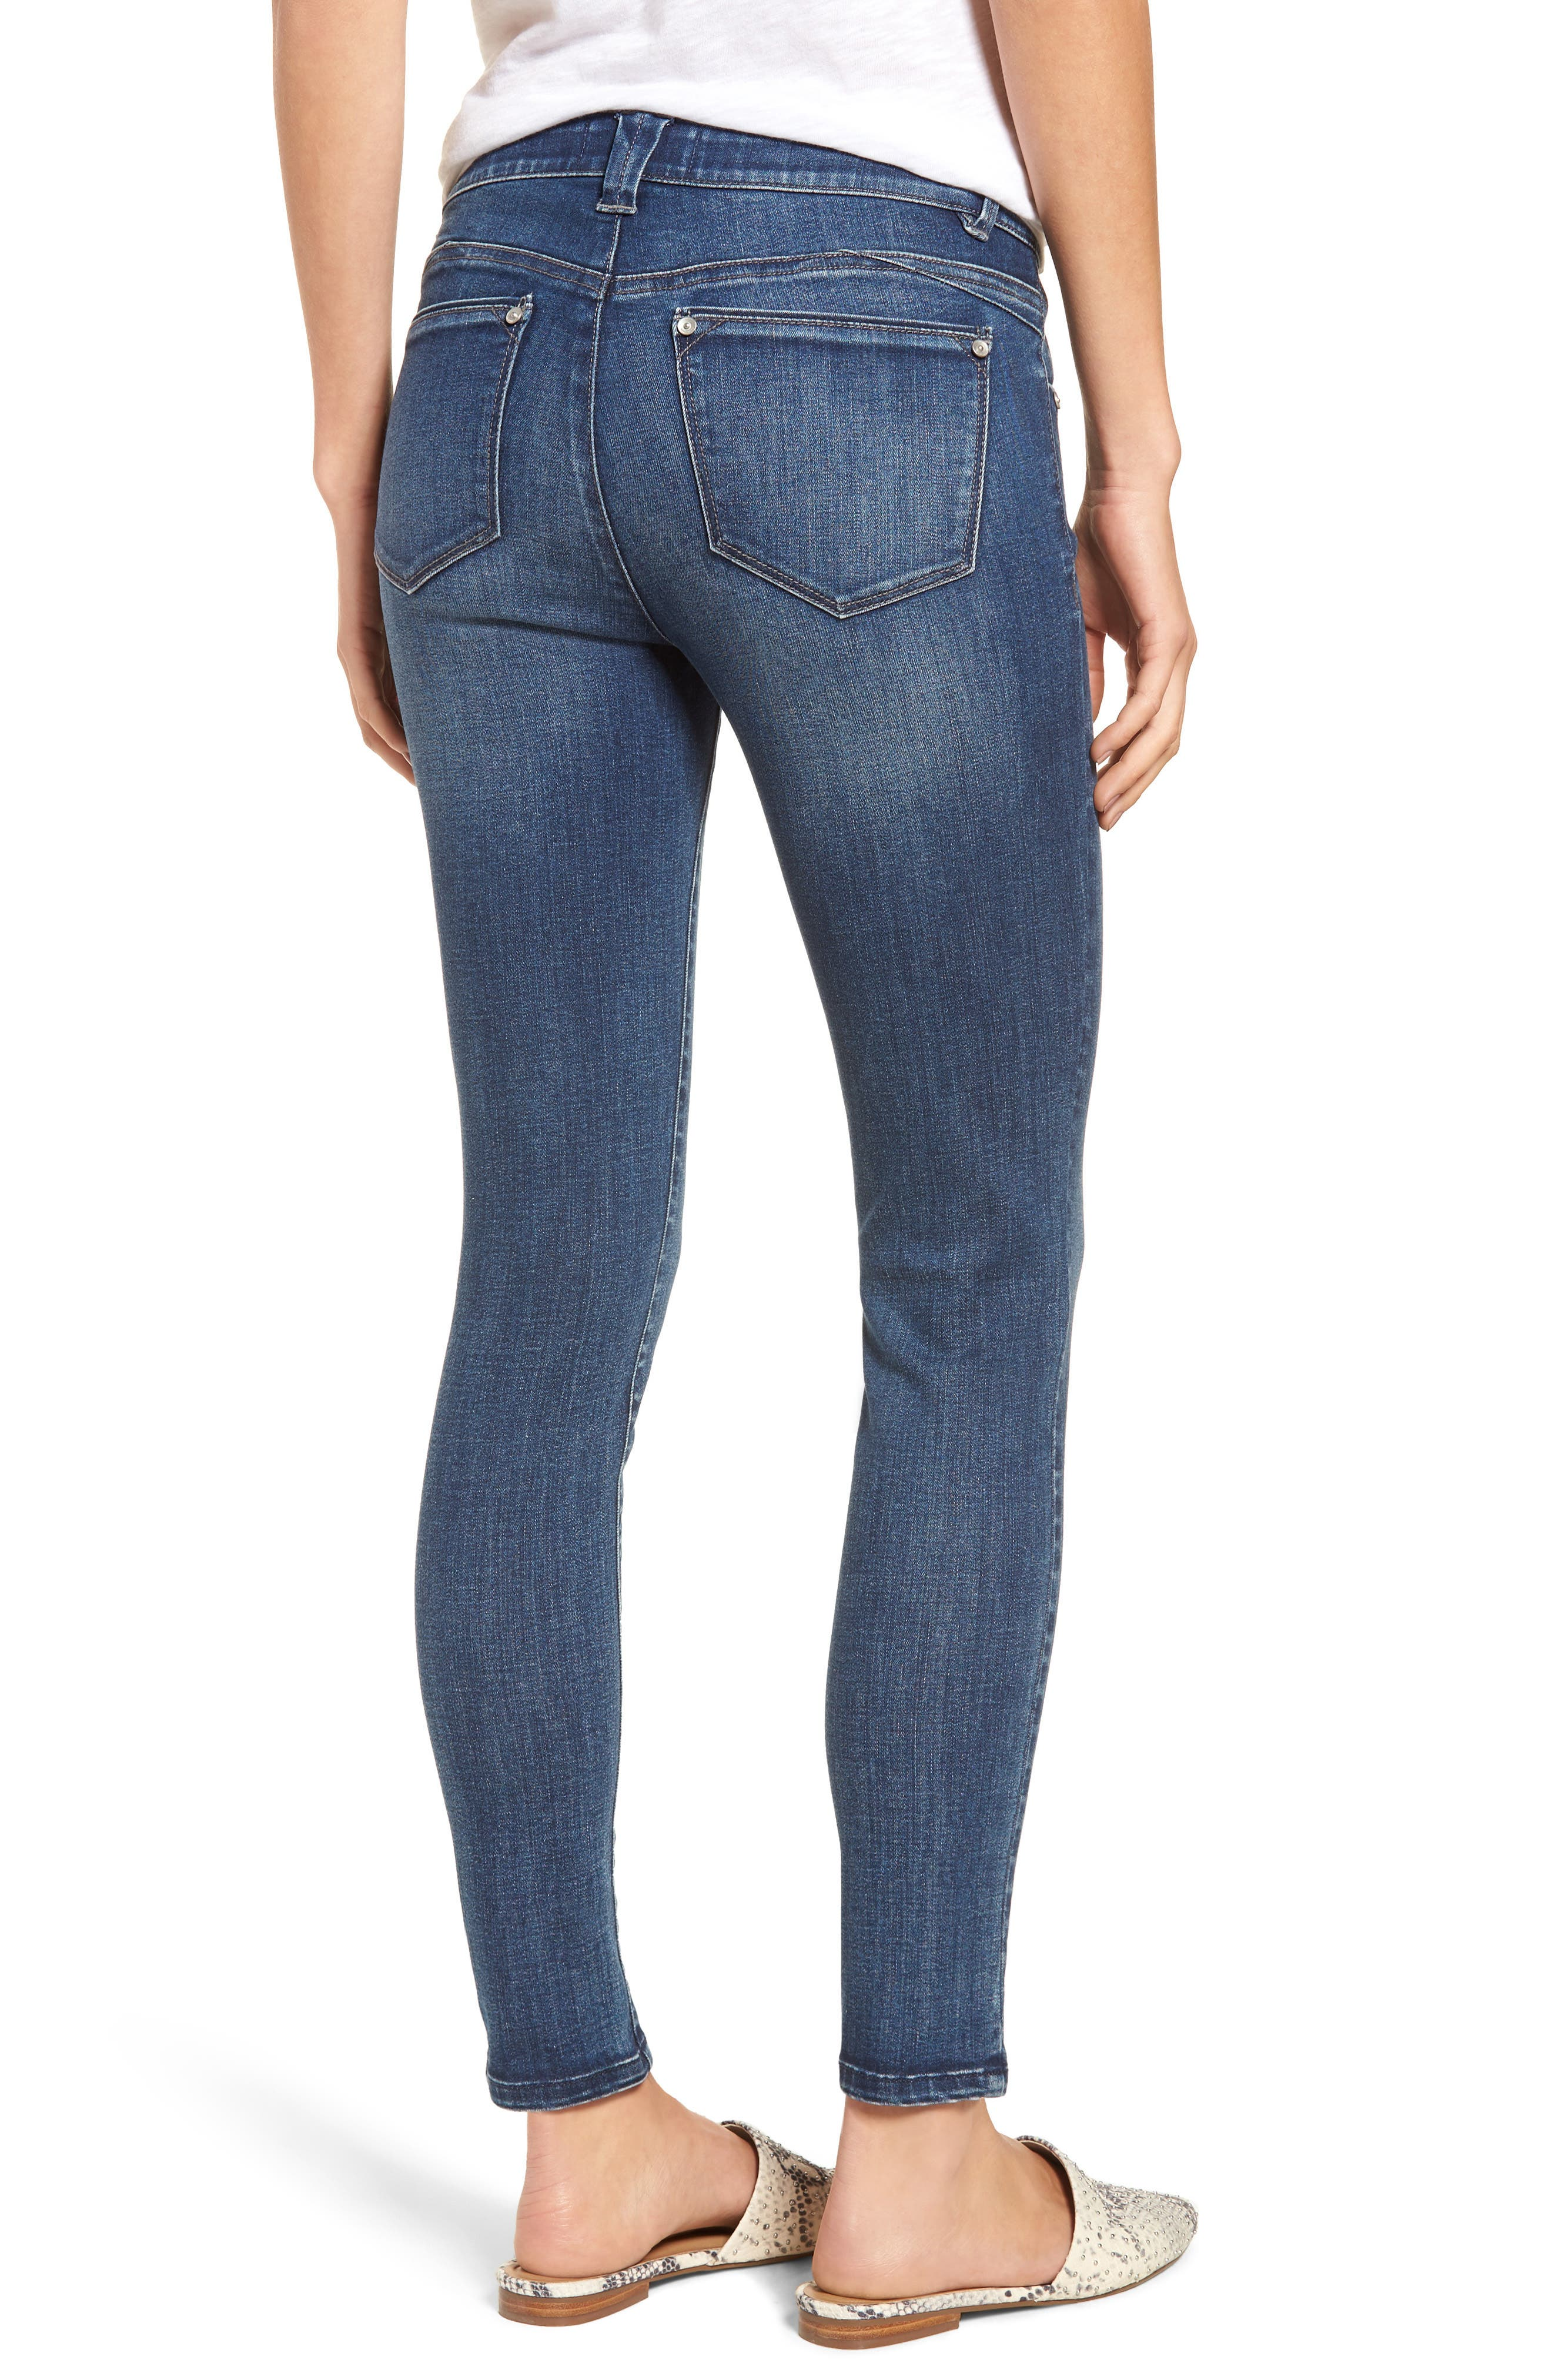 Ab-solution Ankle Skinny Jeans,                             Alternate thumbnail 2, color,                             420